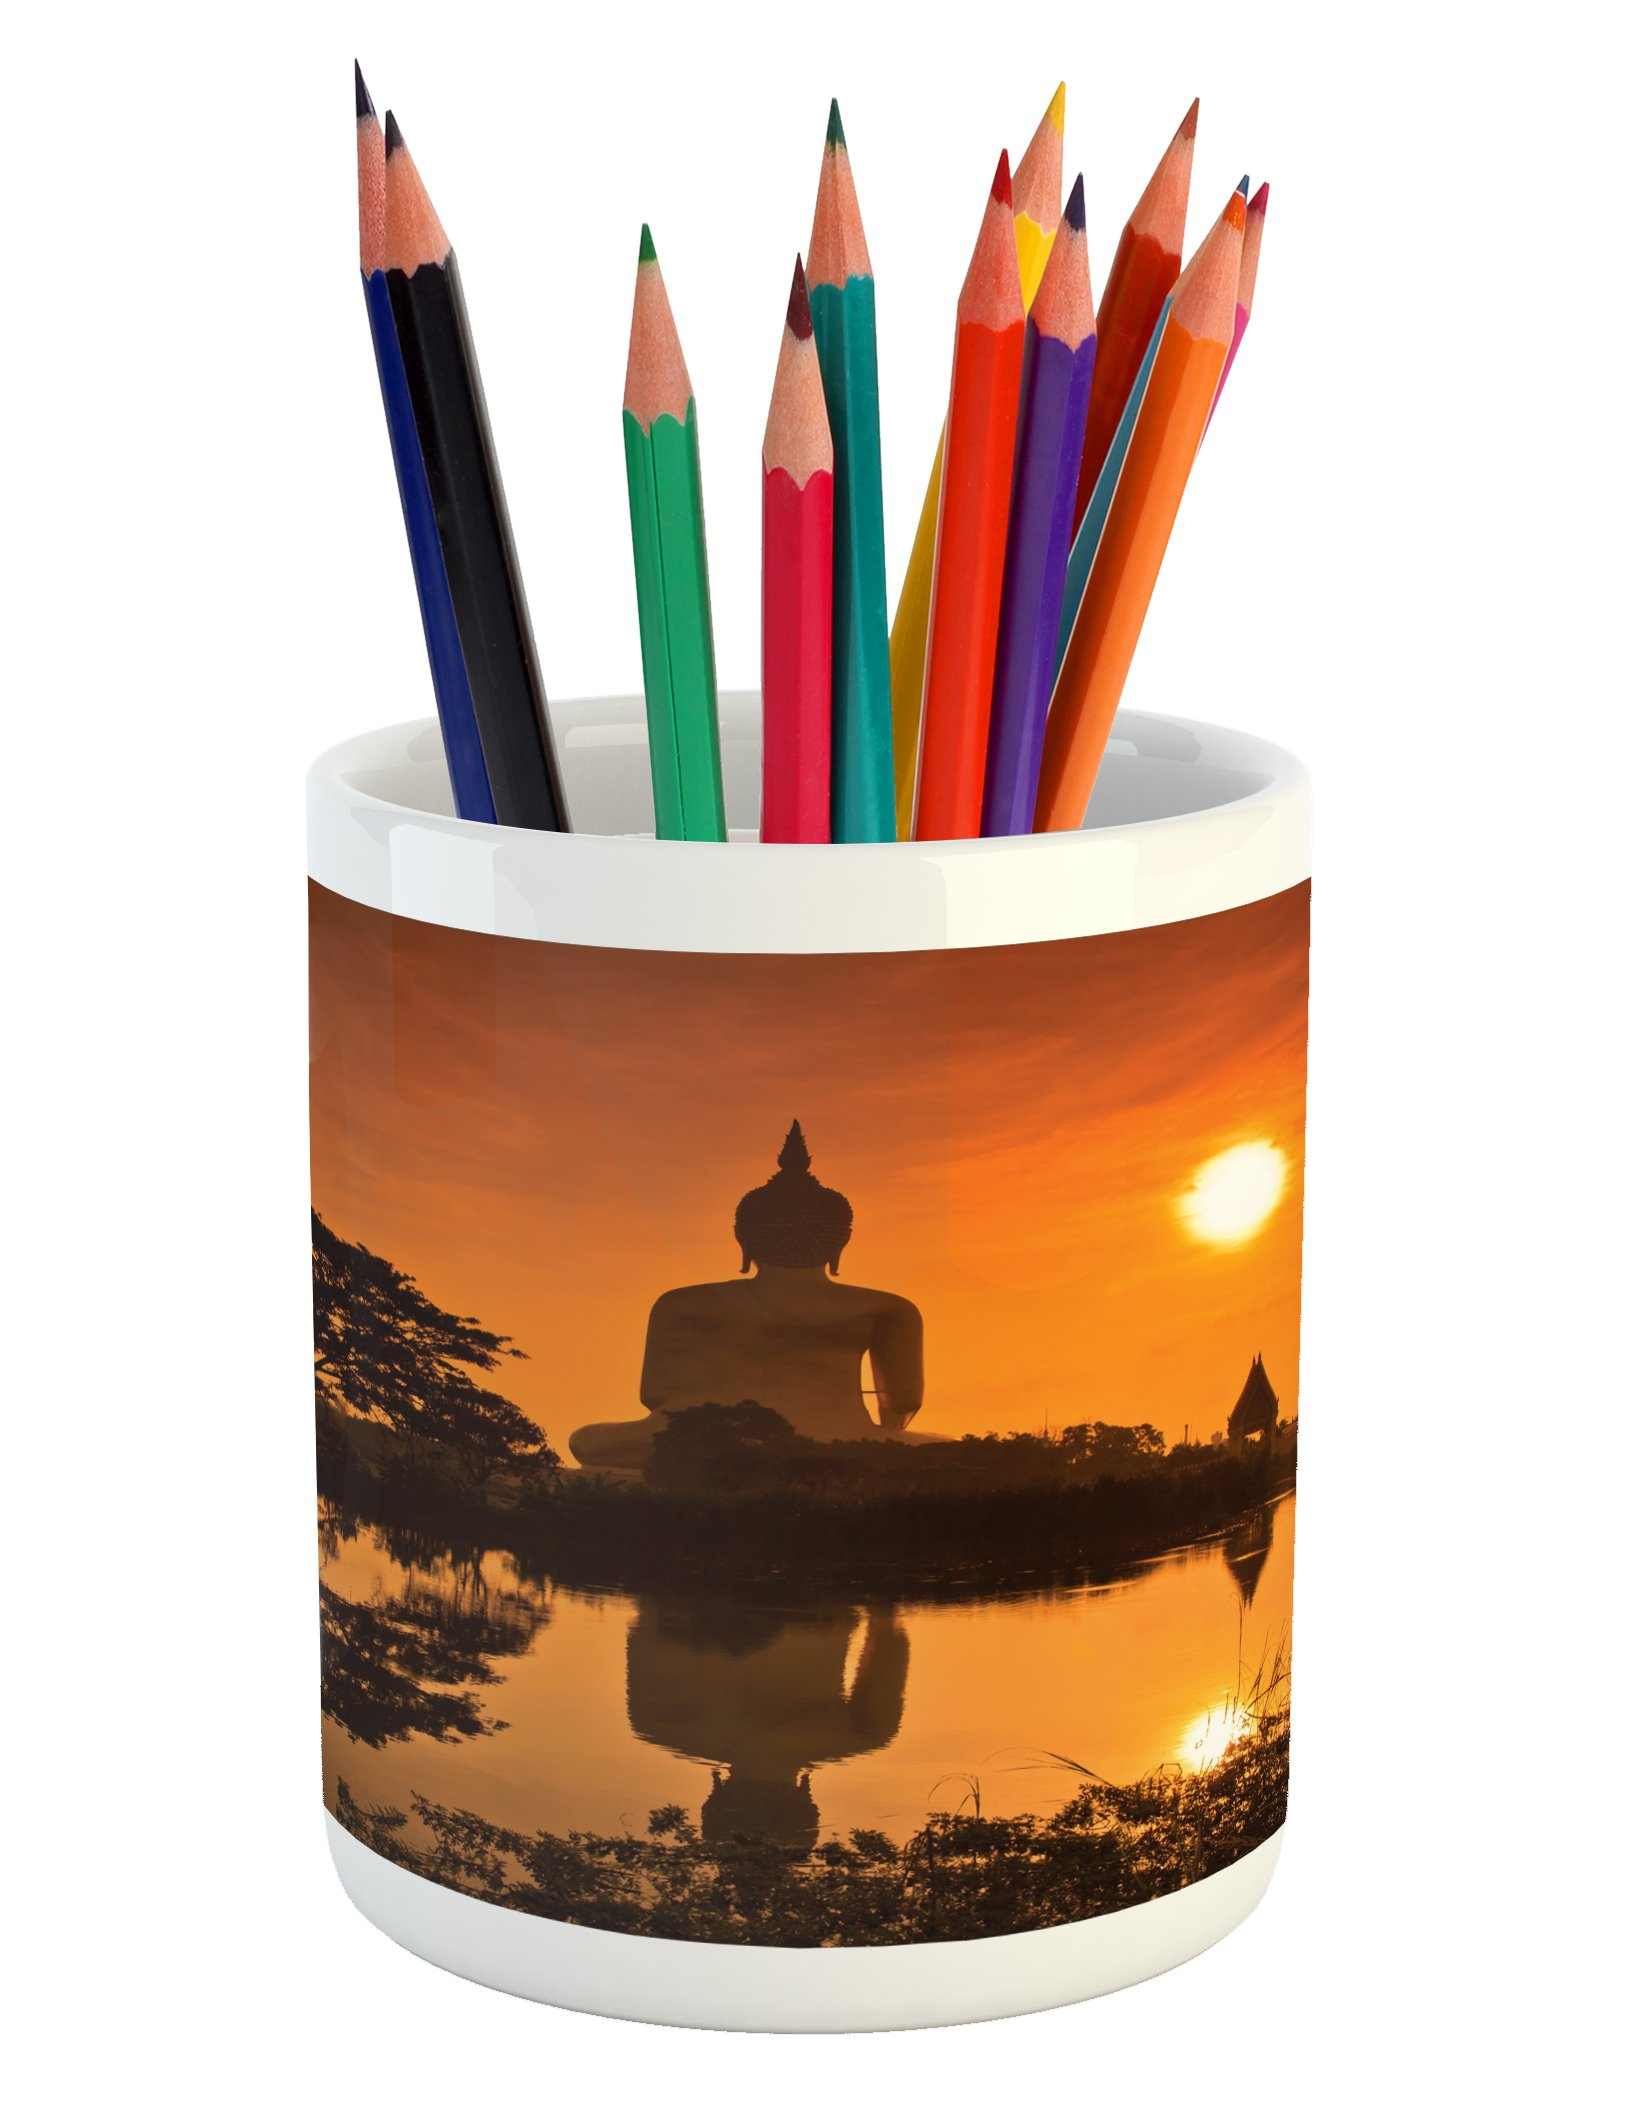 Ambesonne Asian Pencil Pen Holder, Big Giant Statue by the River at Sunset Thai Asian Culture Scene Yin Yang Print, Printed Ceramic Pencil Pen Holder for Desk Office Accessory, Burnt Orange